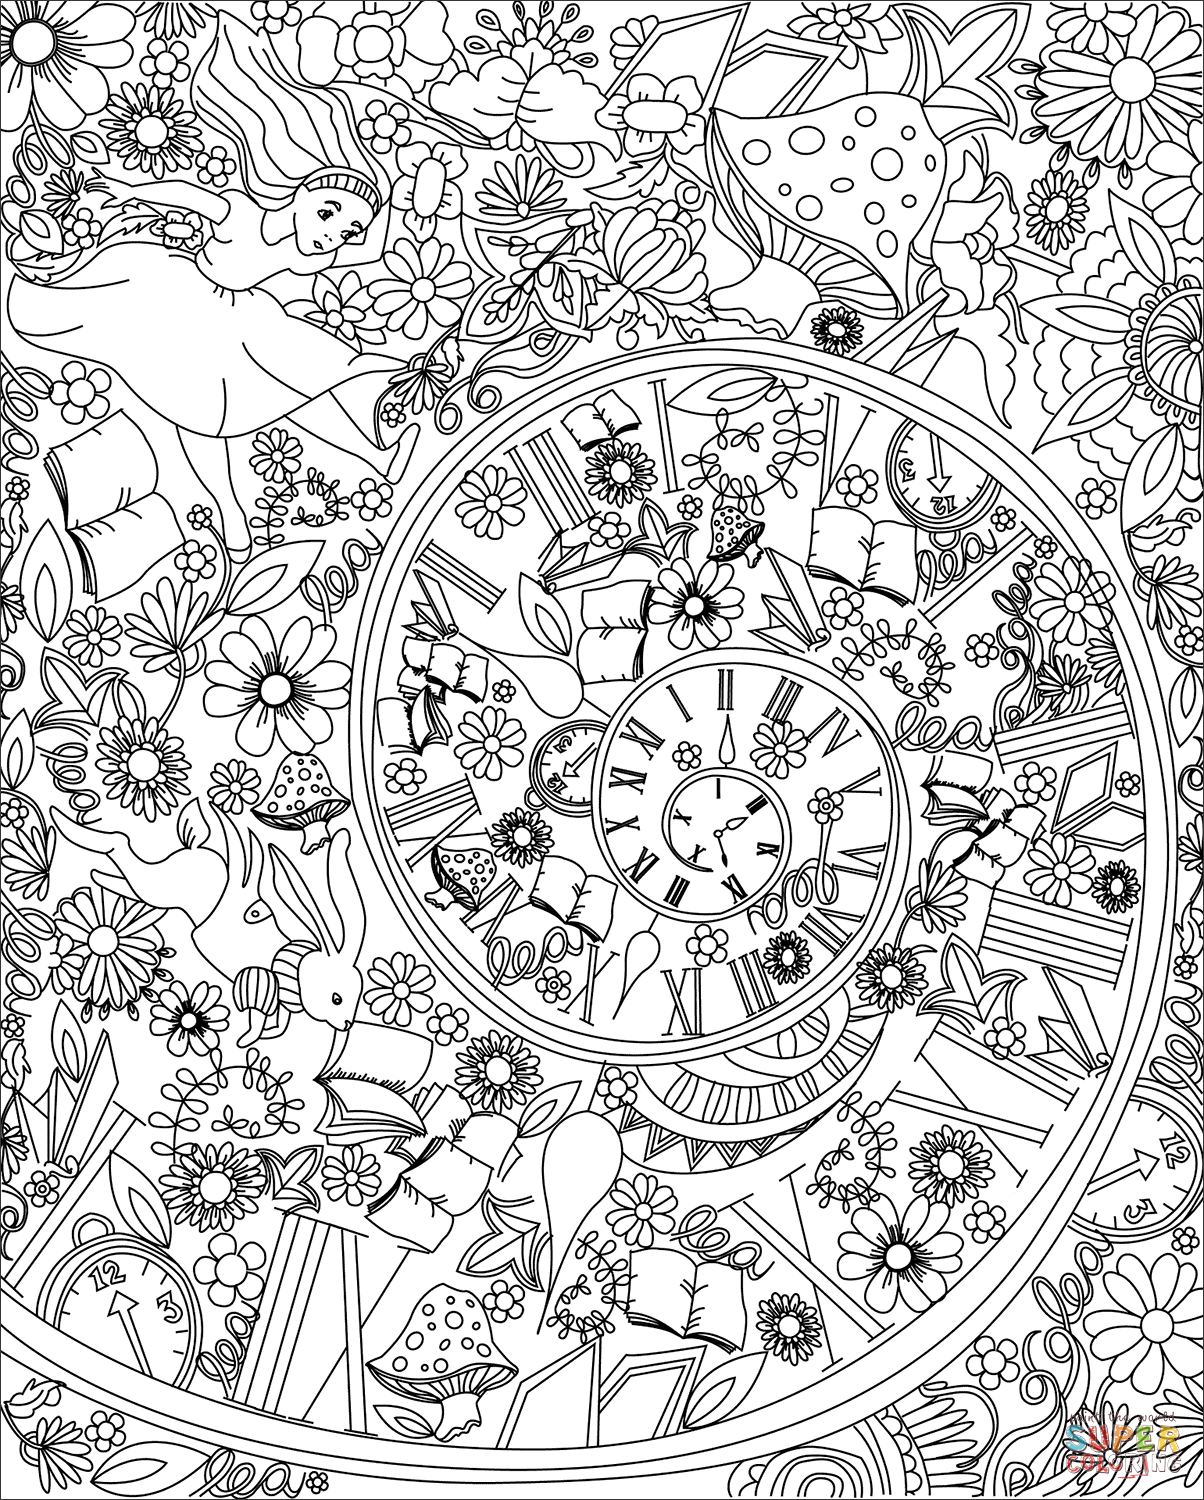 alice in wonderland coloring pages alice in wonderland coloring pages in wonderland coloring pages alice